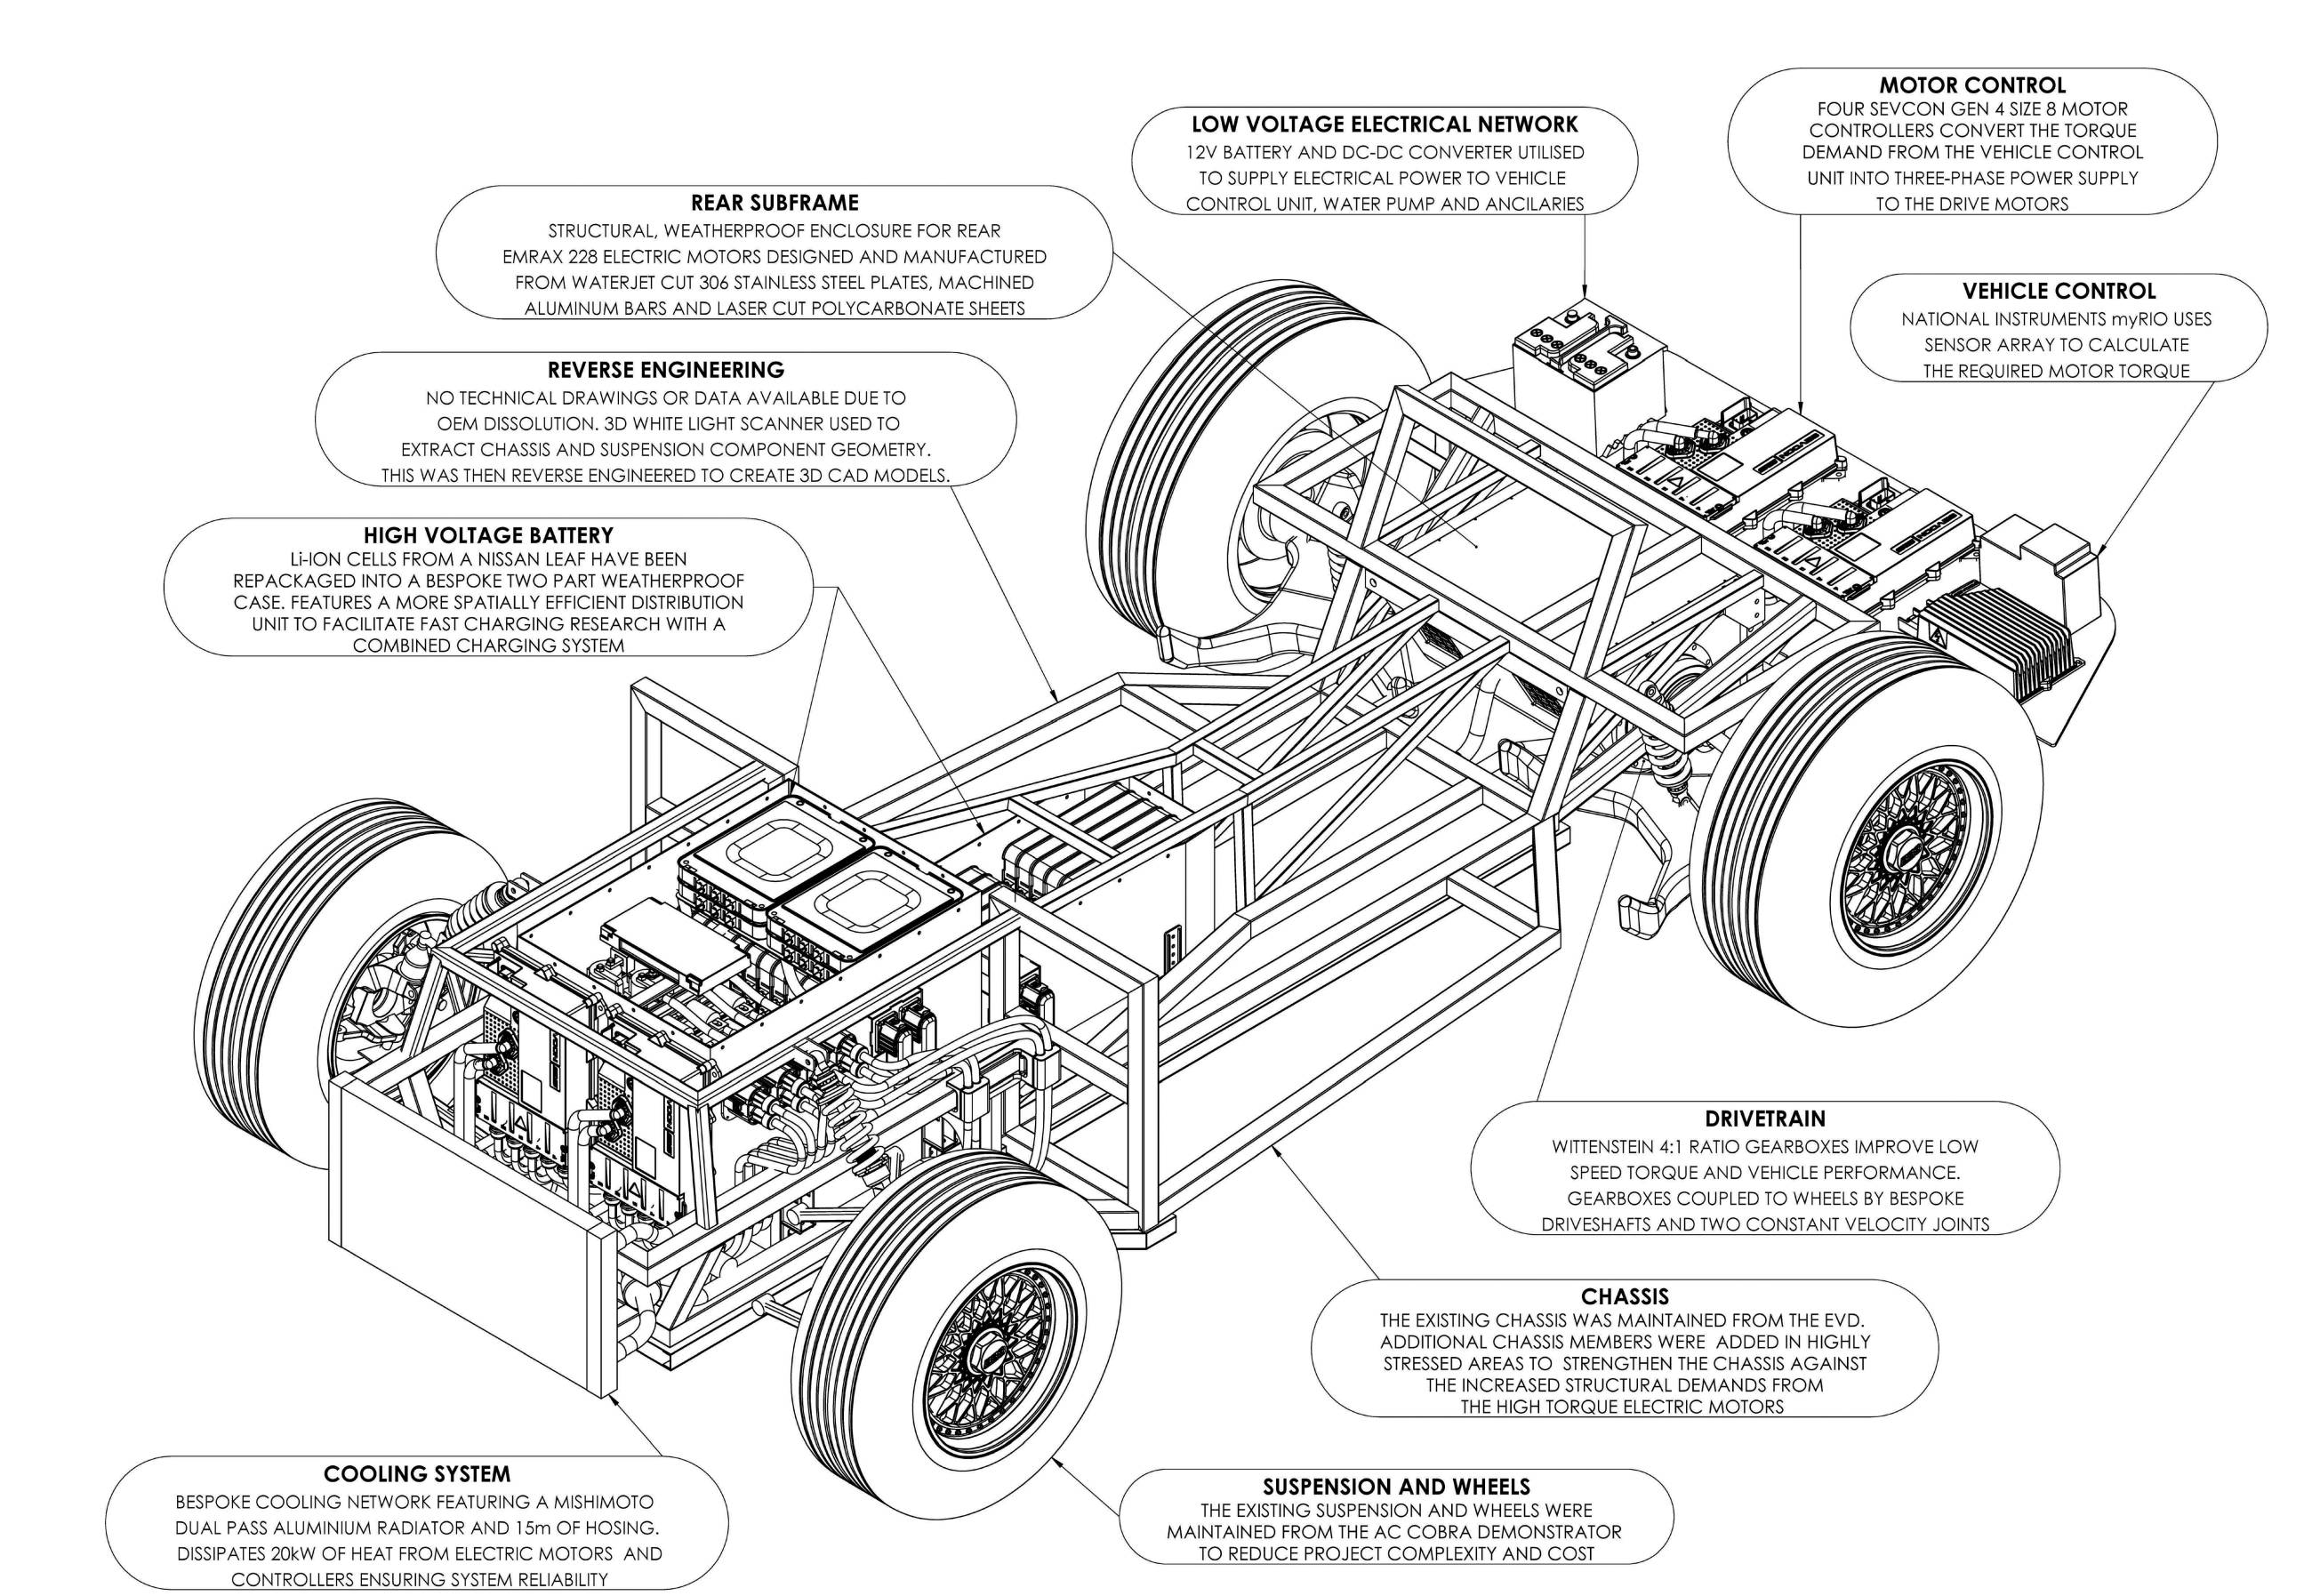 Scalable Electric Powertrain Design Show